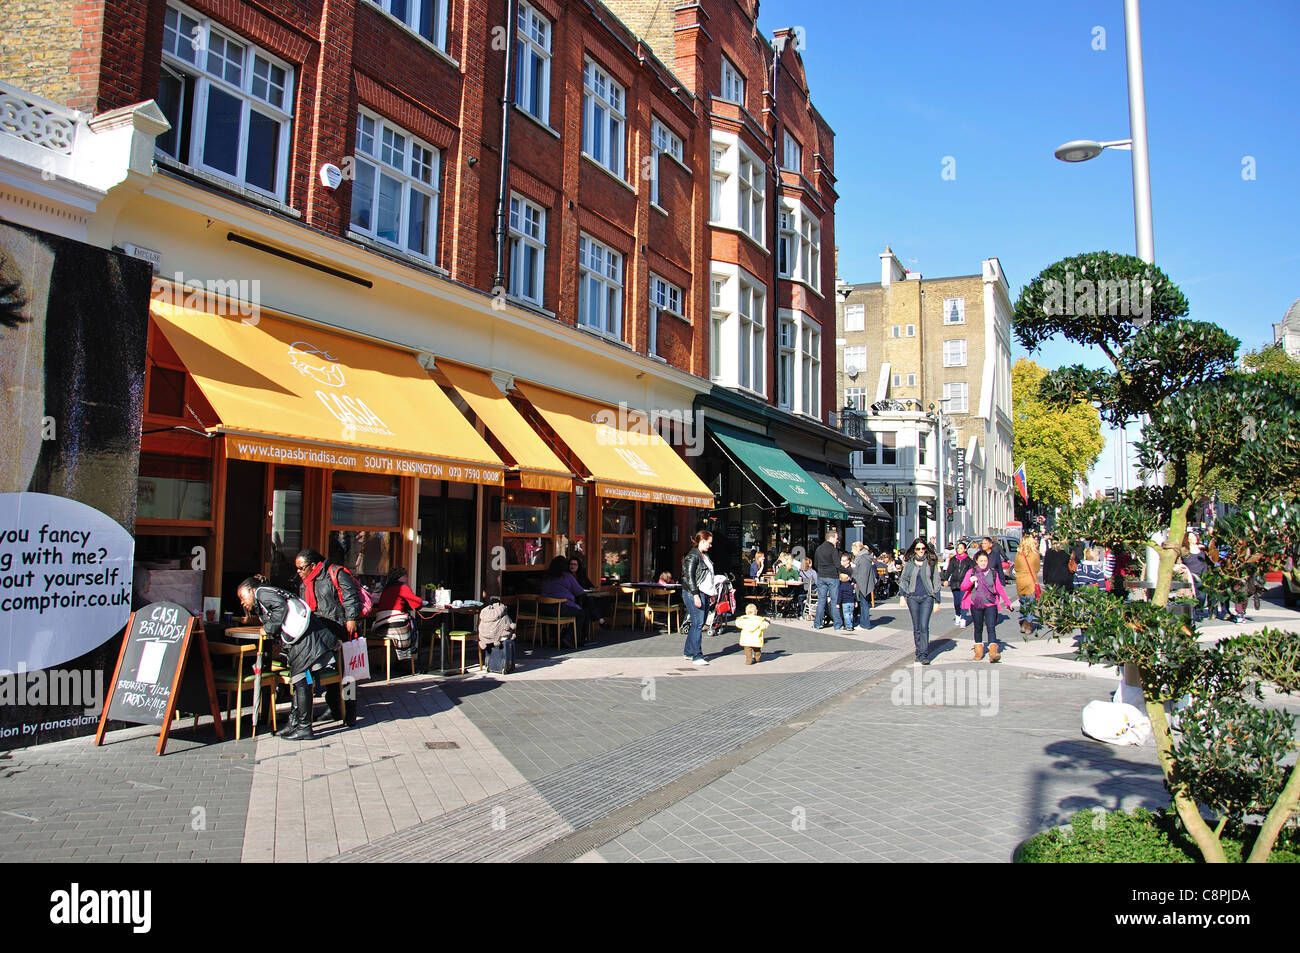 Outdoor cafes, Exhibition Road, Kensington, Royal Borough of Kensington and Chelsea, London, Greater London, England, - Stock Image